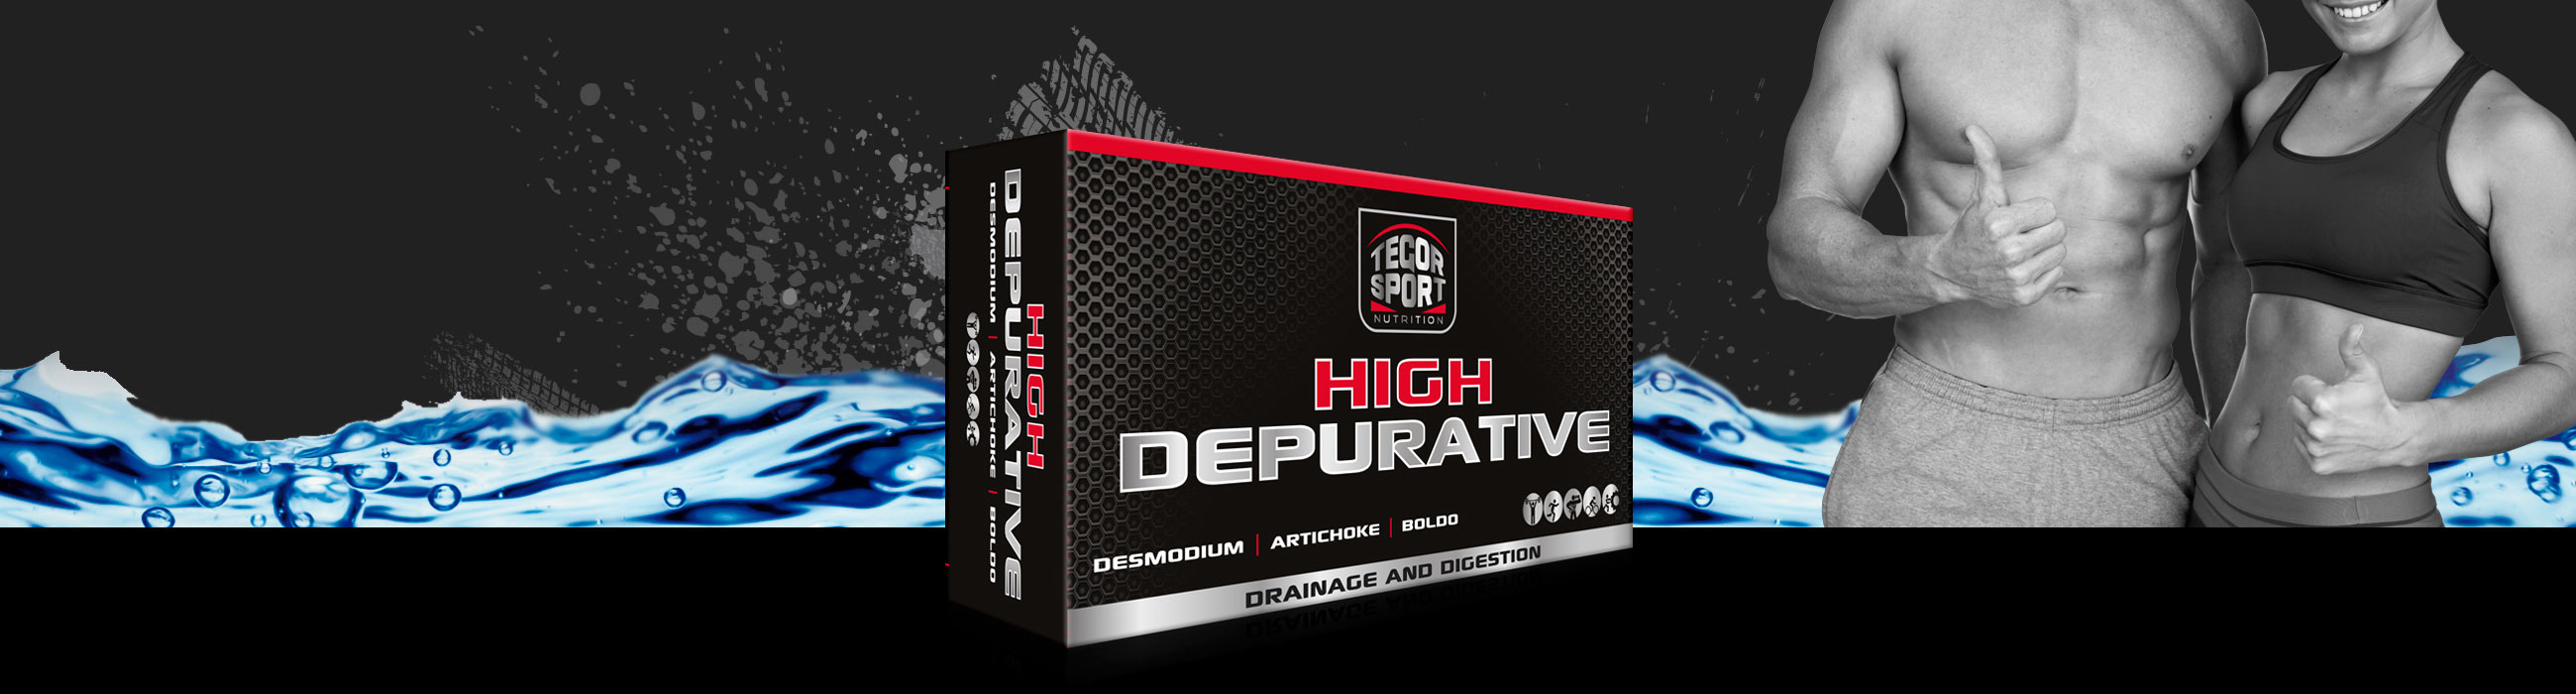 Cabecera high depurative